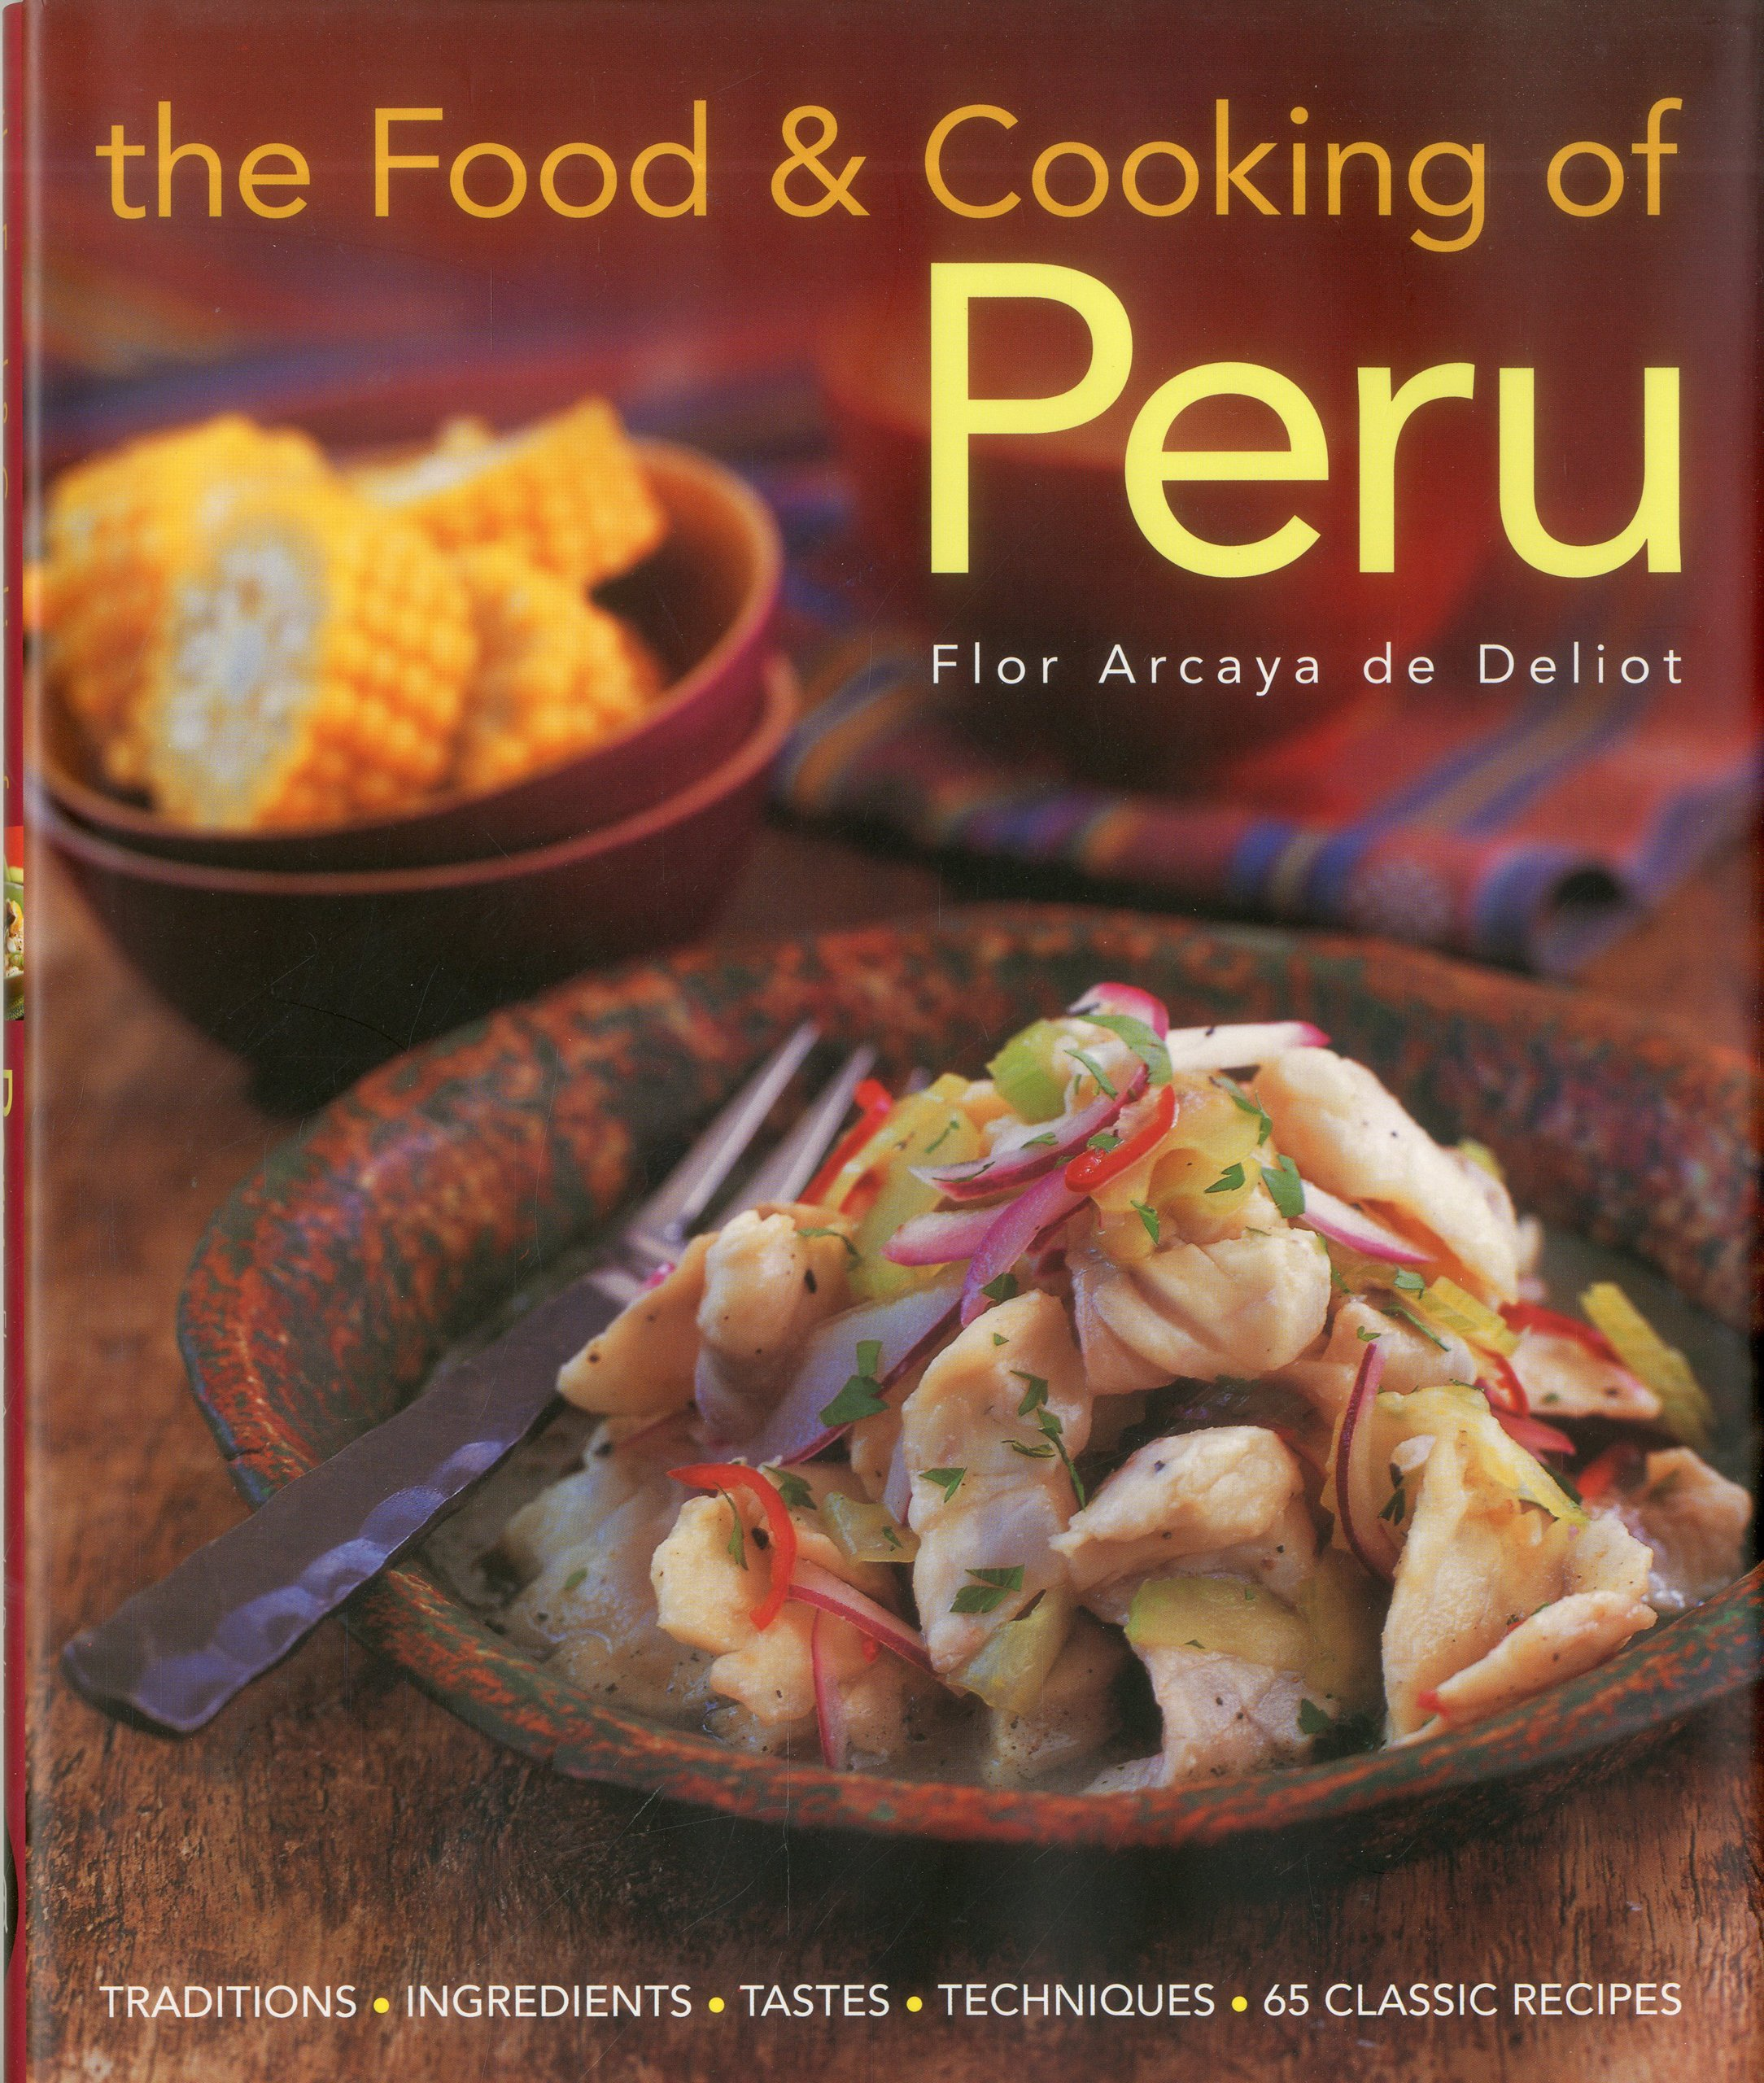 The food and cooking of peru traditions ingredients tastes and the food and cooking of peru traditions ingredients tastes and techniques in 60 classic recipes flor arcaya de deliot 9781903141687 amazon books forumfinder Gallery